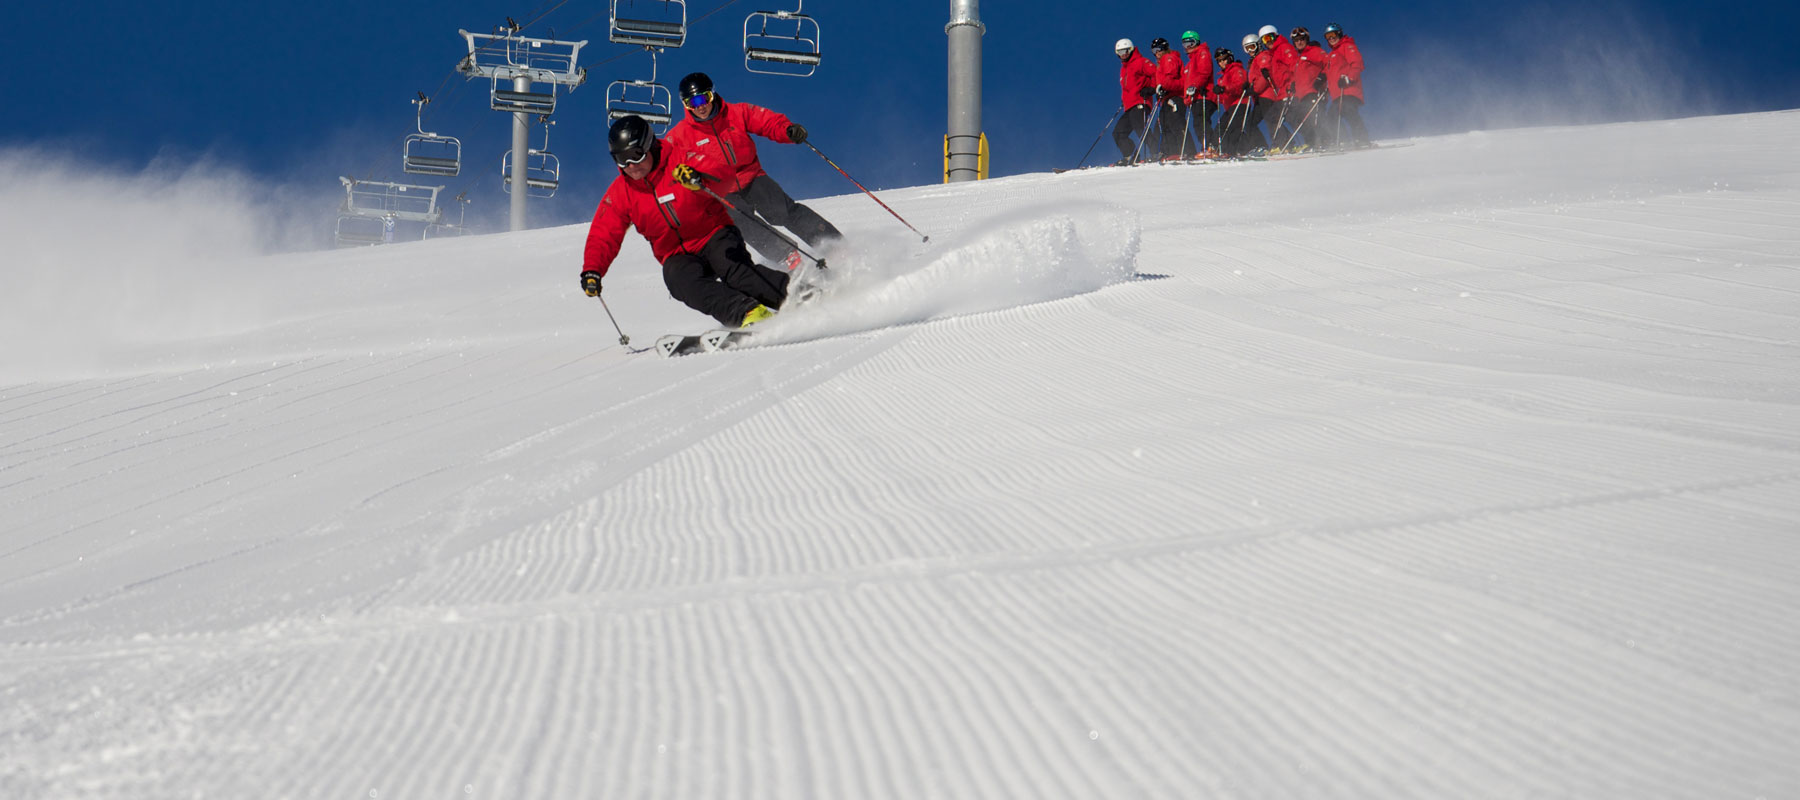 ski instructor courses in canada  perfect for gap years or career breaks  simply snowsports